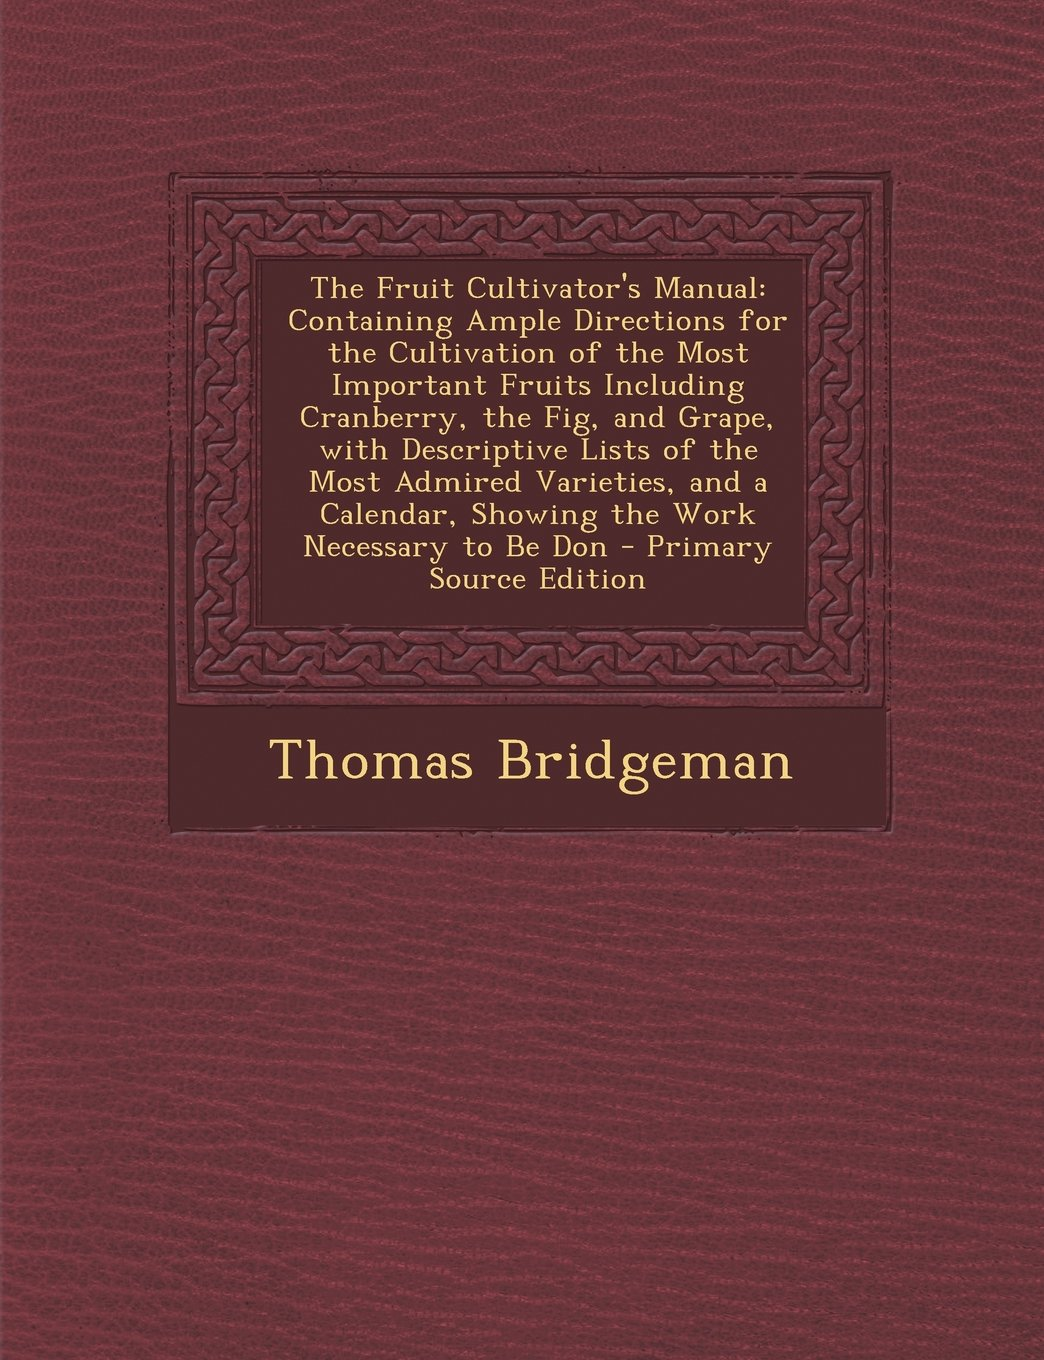 Read Online The Fruit Cultivator's Manual: Containing Ample Directions for the Cultivation of the Most Important Fruits Including Cranberry, the Fig, and Grape, ... Showing the Work Necessary to Be Don pdf